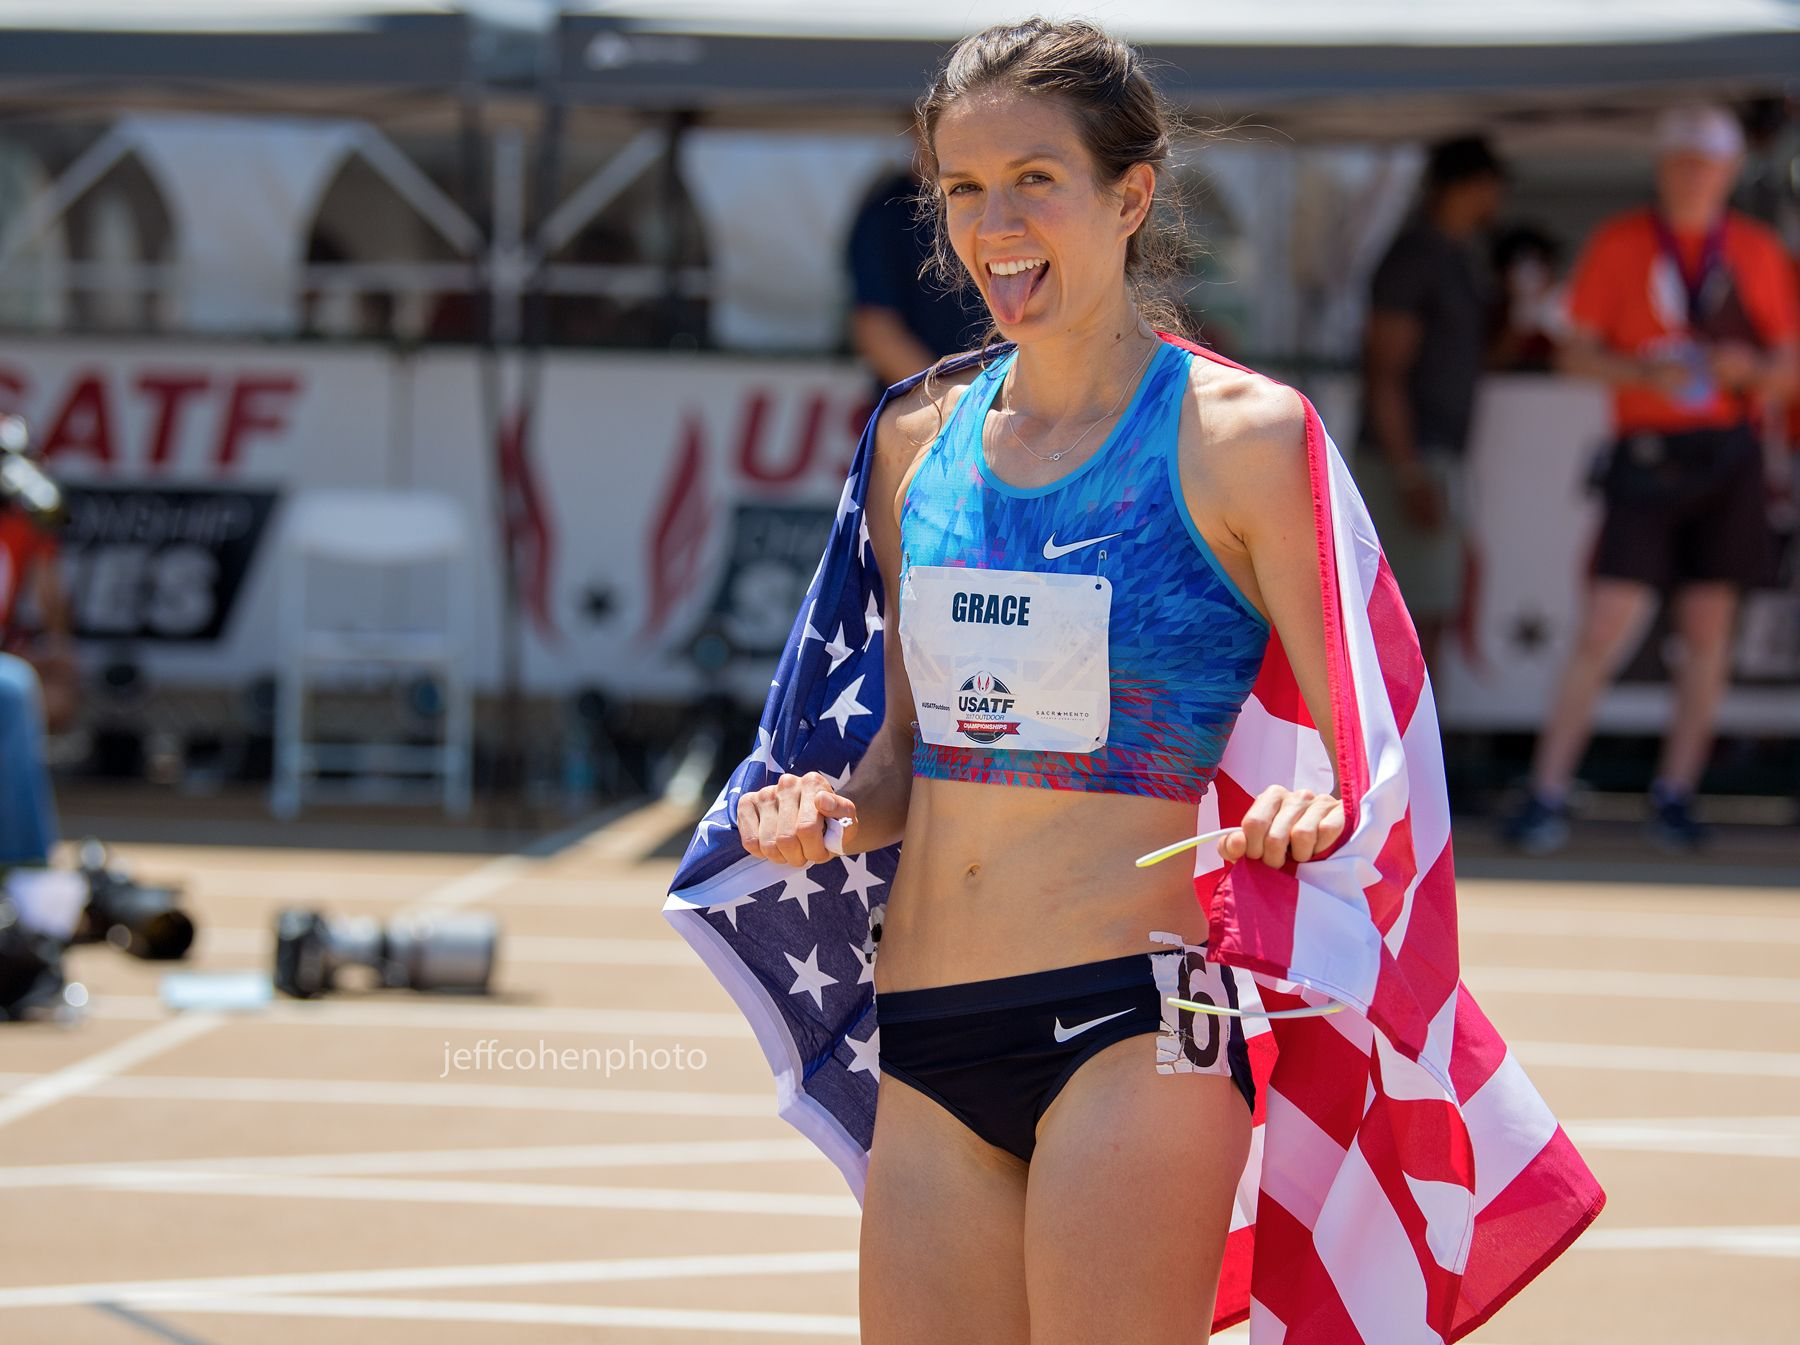 2017-usatf-outdoor-champs-day-3-grace-800w-tongue-jeff-cohen-photo--3954-web.jpg